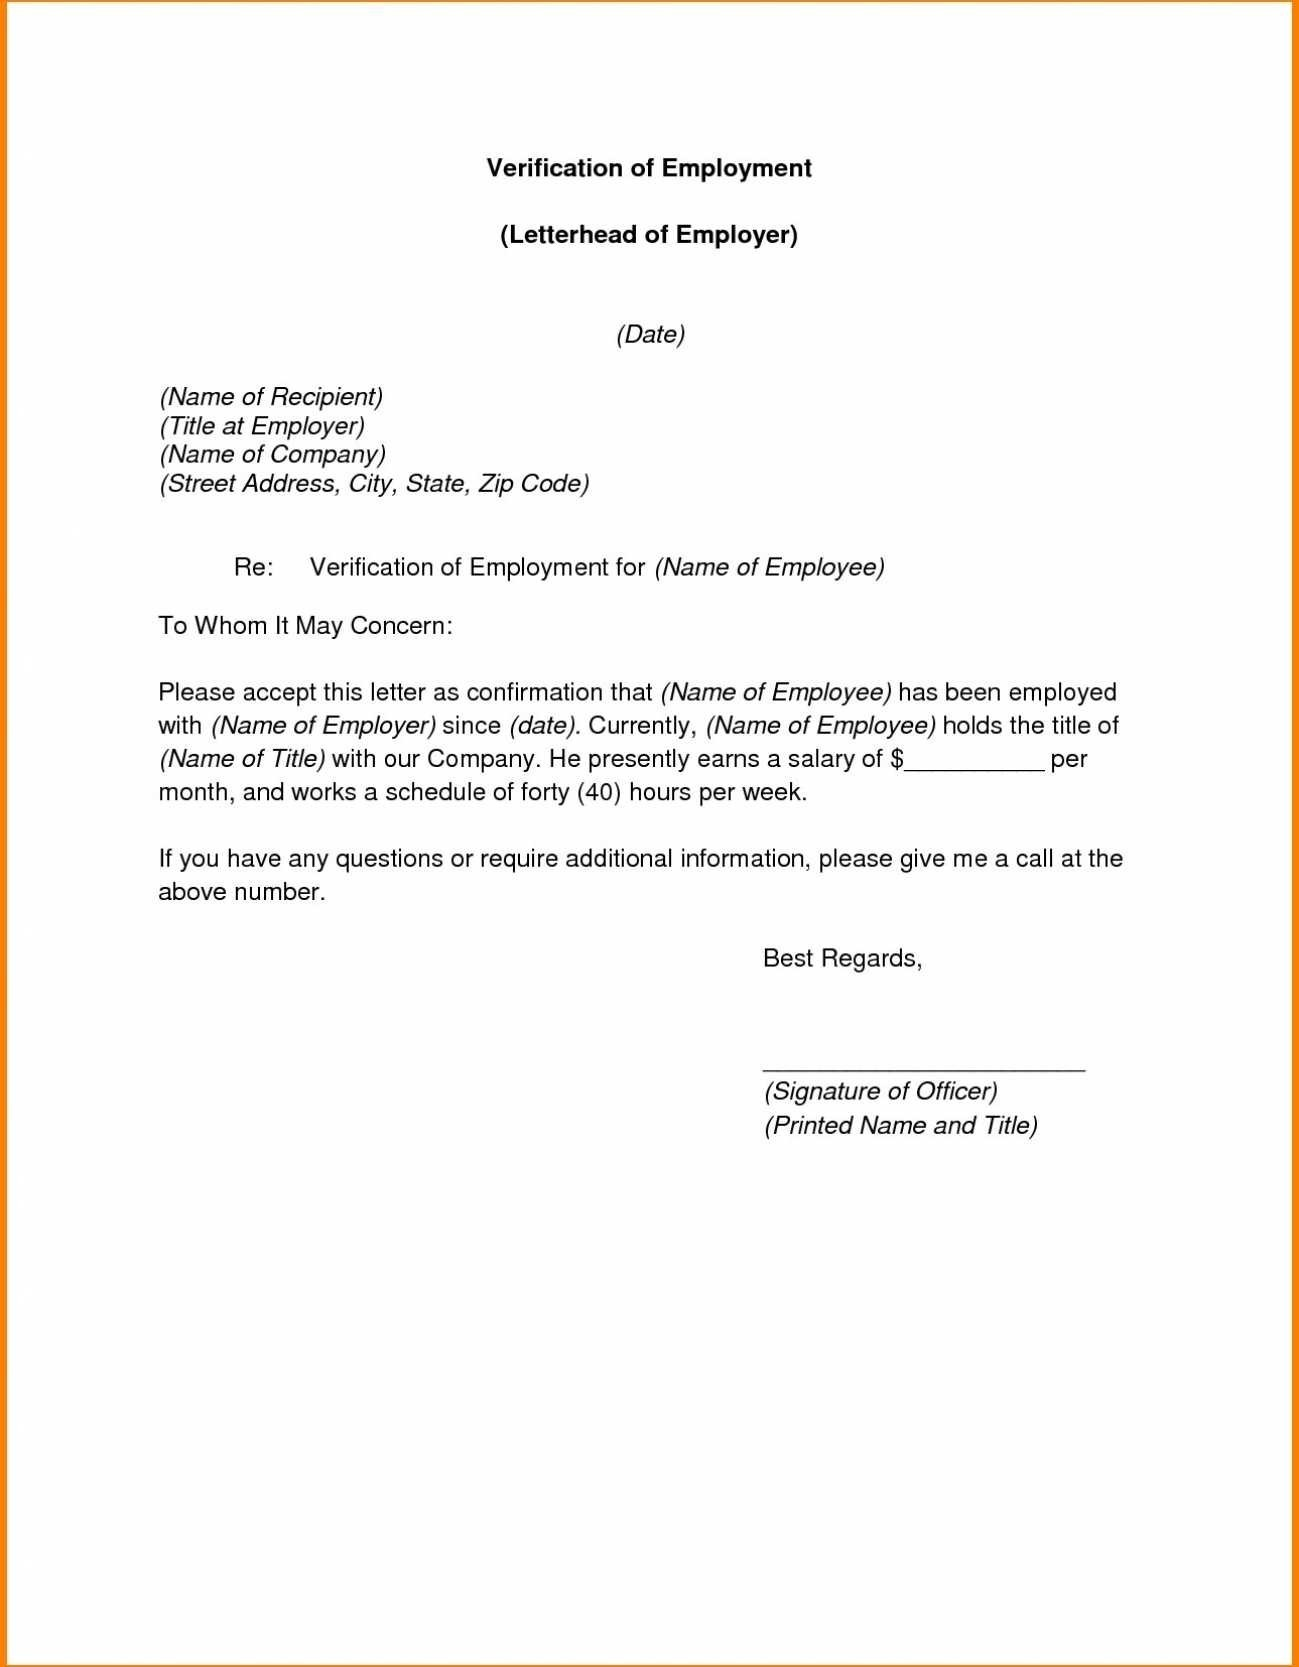 Certificate Of Employment Request Template New Verification Letter To Whom It May Concern